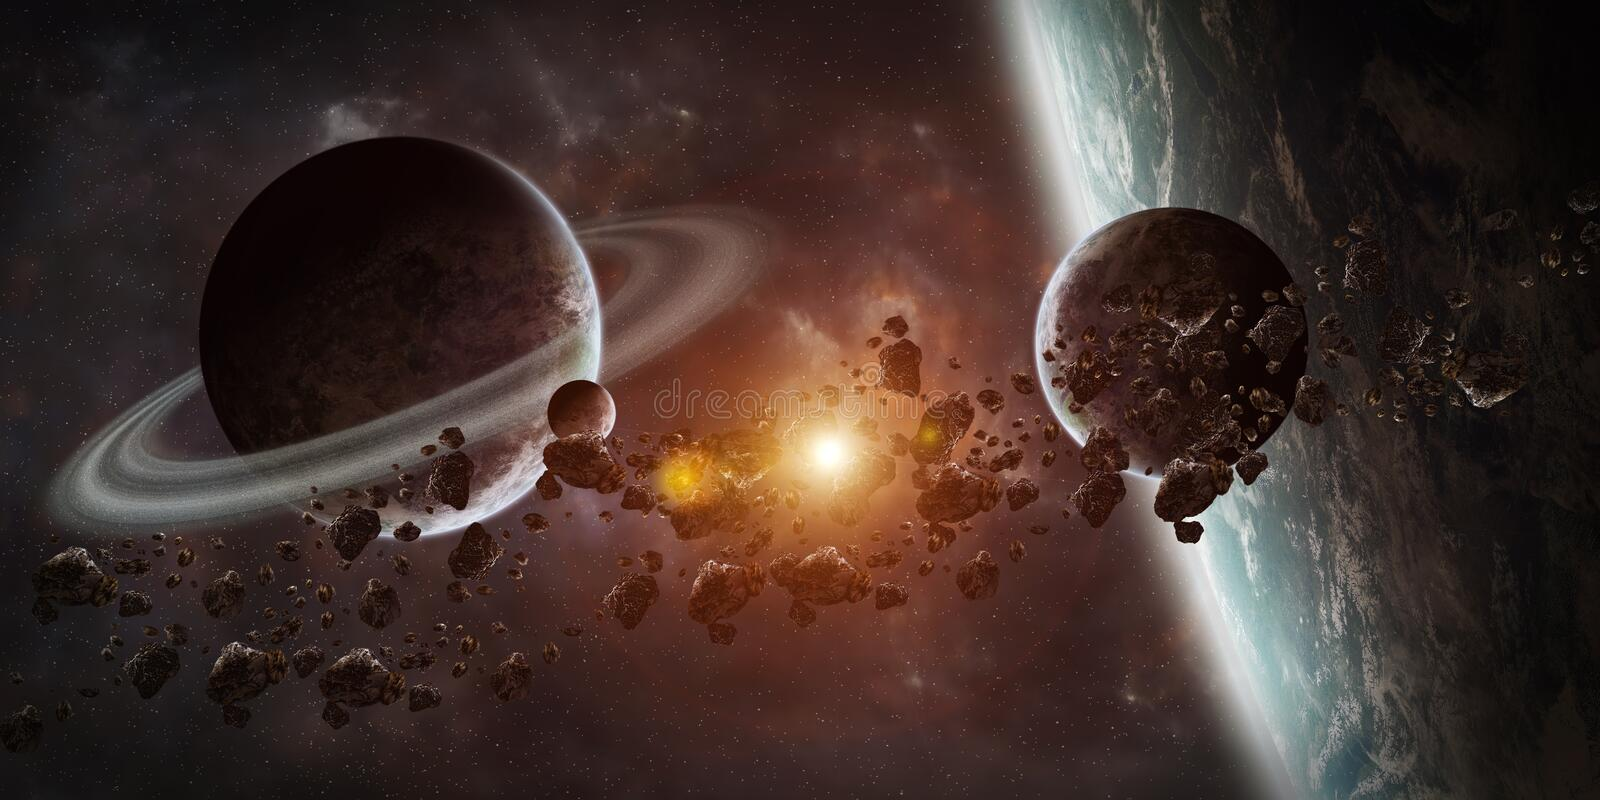 Sunrise over distant planet system in space 3D rendering element stock illustration